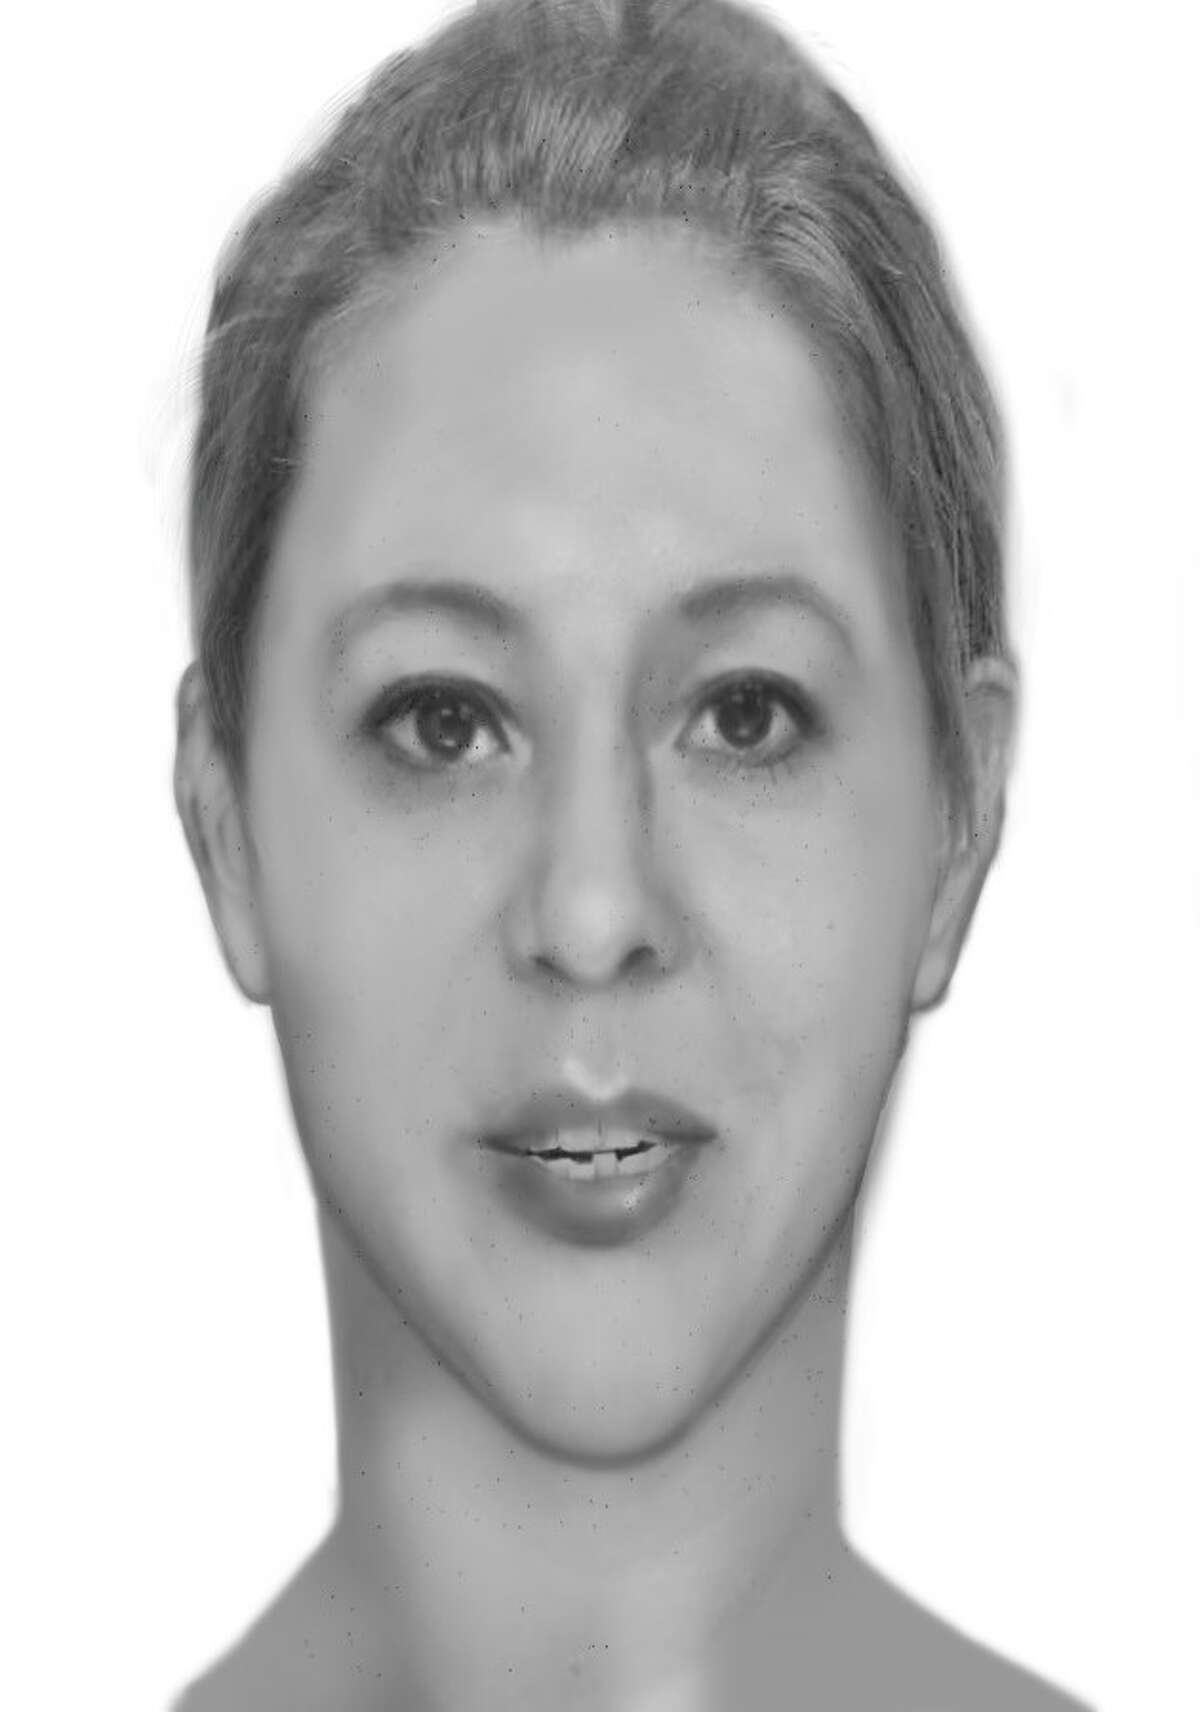 On Wednesday, June 5, 2019, the Bexar County Sheriff's Office released a postmortem sketch of a woman whose remains were found near Government Canyon Natural Area on April 4, 2019.